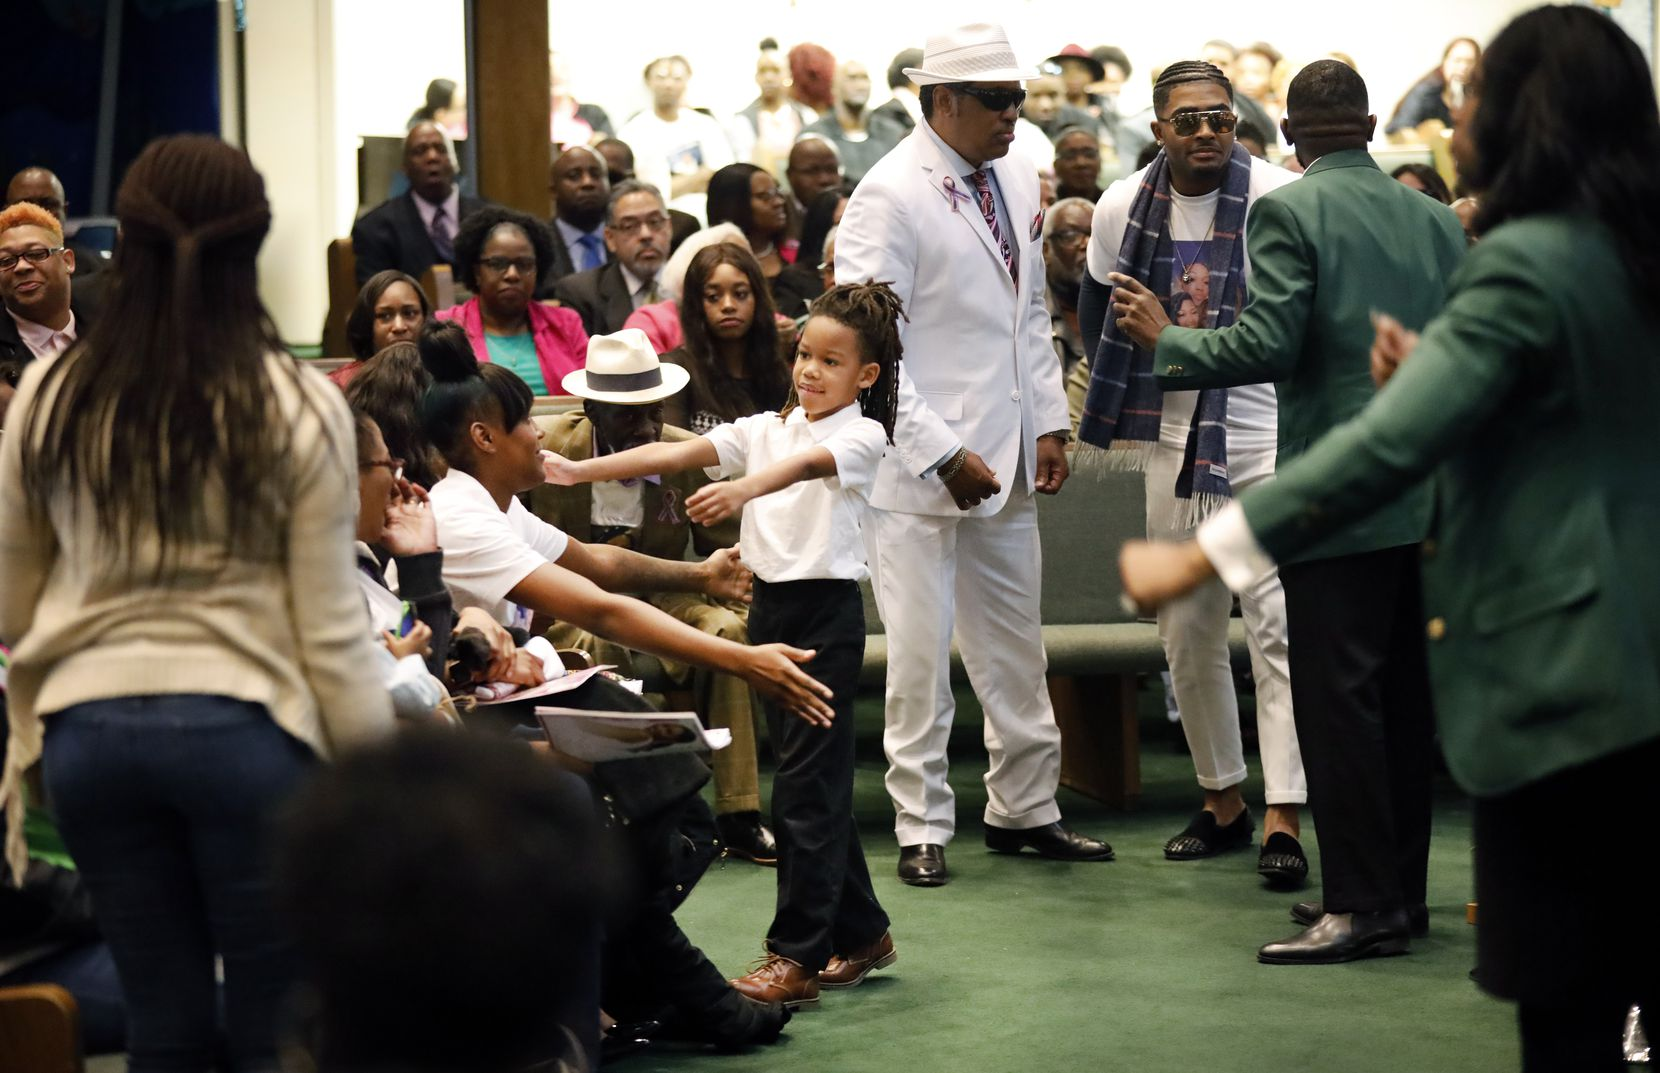 LaTiffiney Rodgers' 7 year-old son, Jorden, reaches for a cousin at a funeral service for his mother in DeSoto on Feb. 22. Police say Rodgers was killed by the father of her children, Johnnie Palmore.